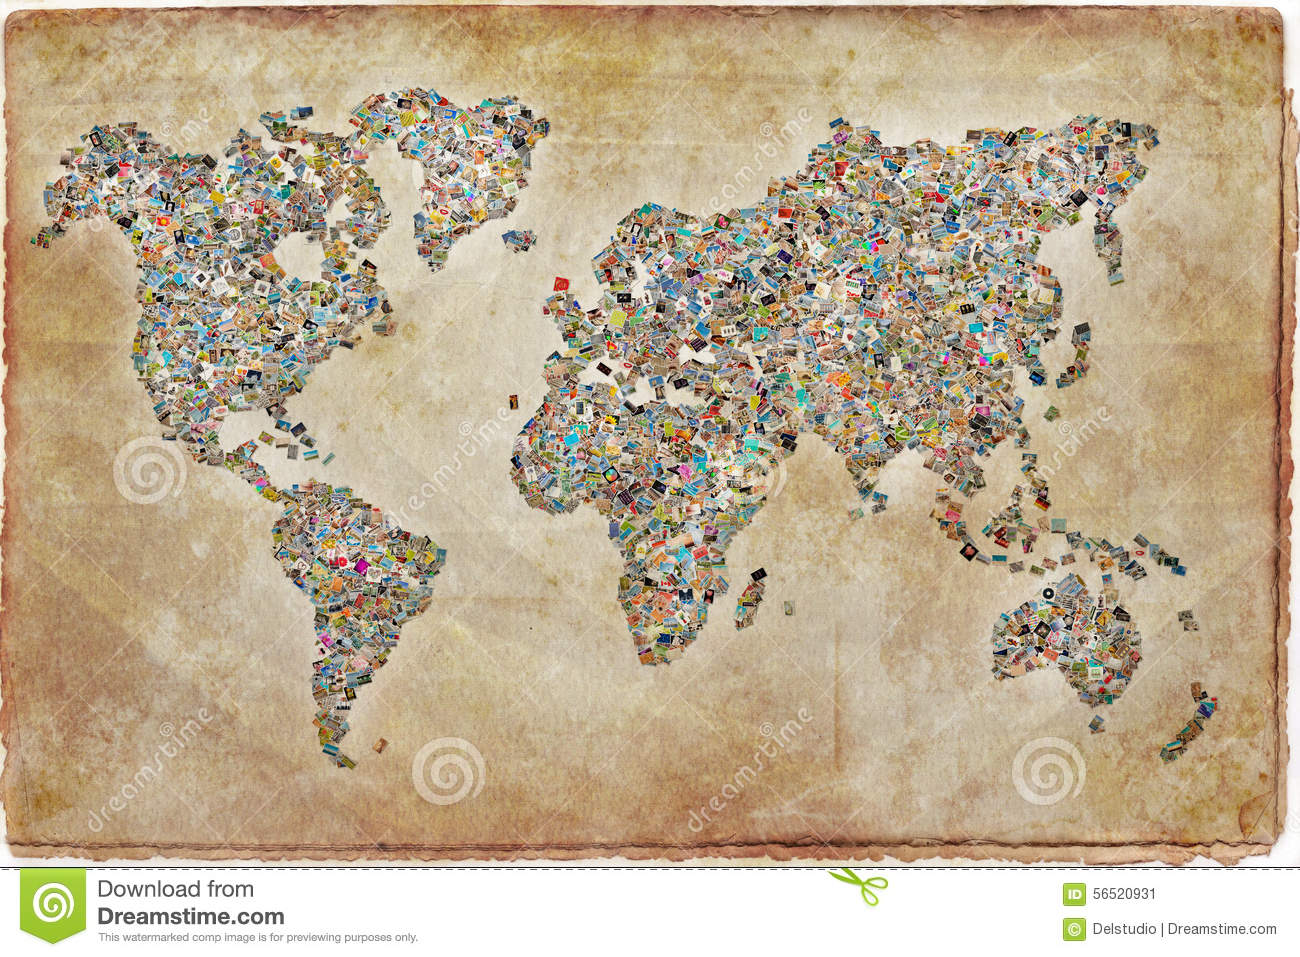 Photos collage in the shape of a world map stock image image of photos collage in the shape of a world map gumiabroncs Image collections